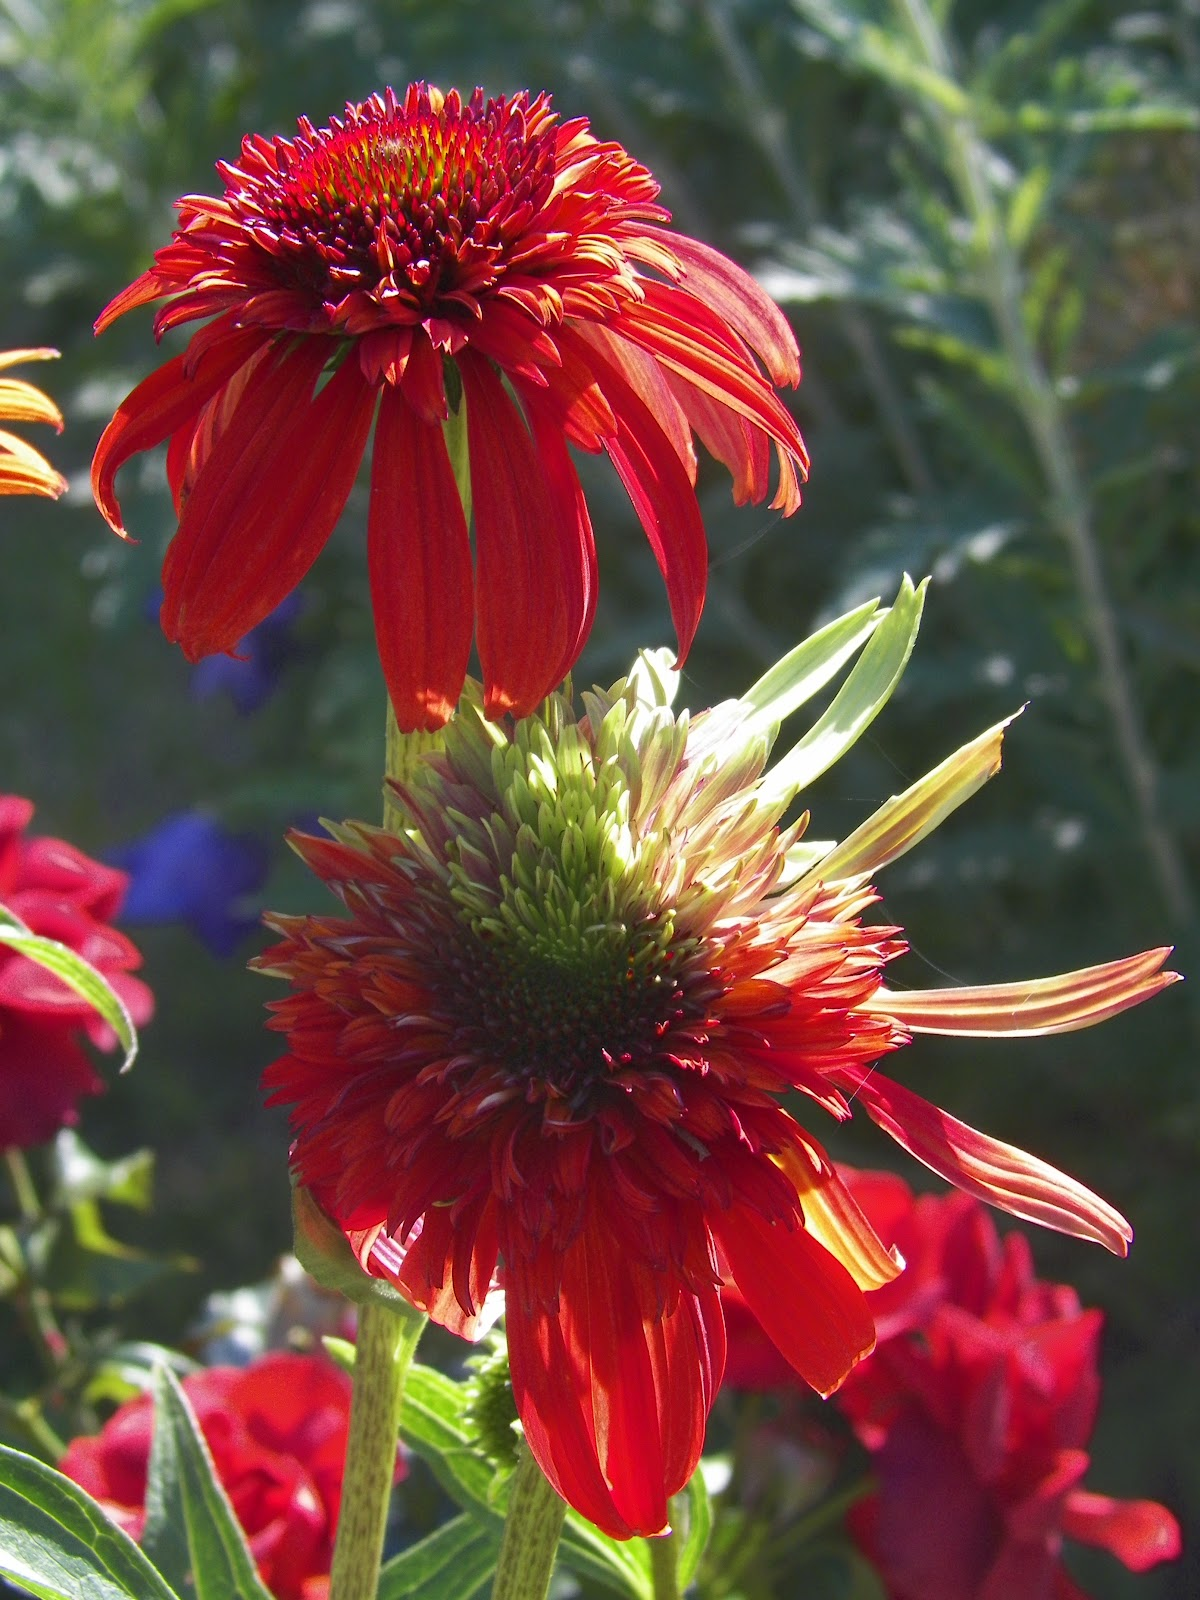 I Love My Garden: The Heat is On: Hot Colors in the Garden